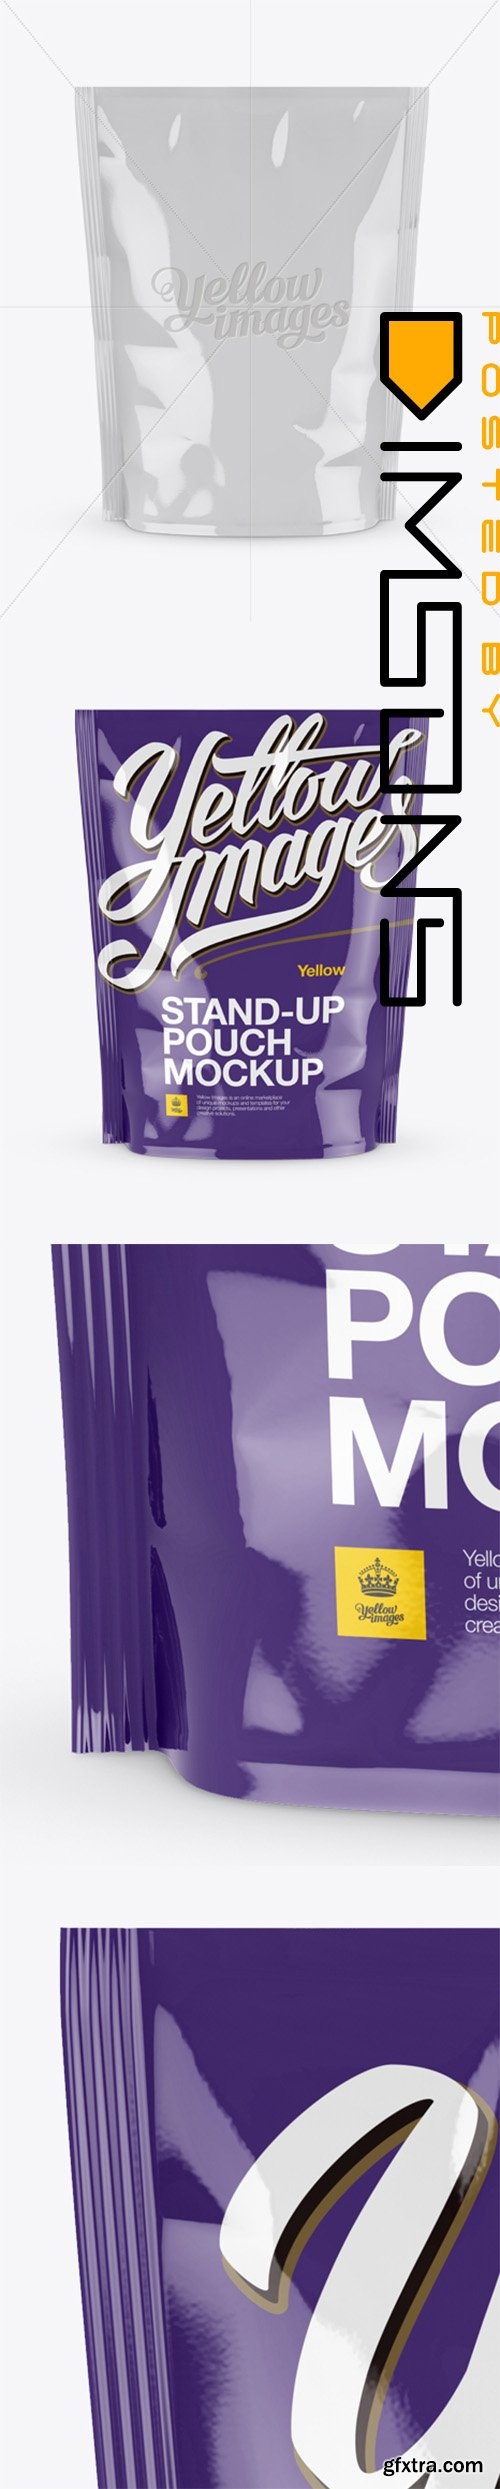 Glossy Stand-up Pouch Mockup - Front View 14093